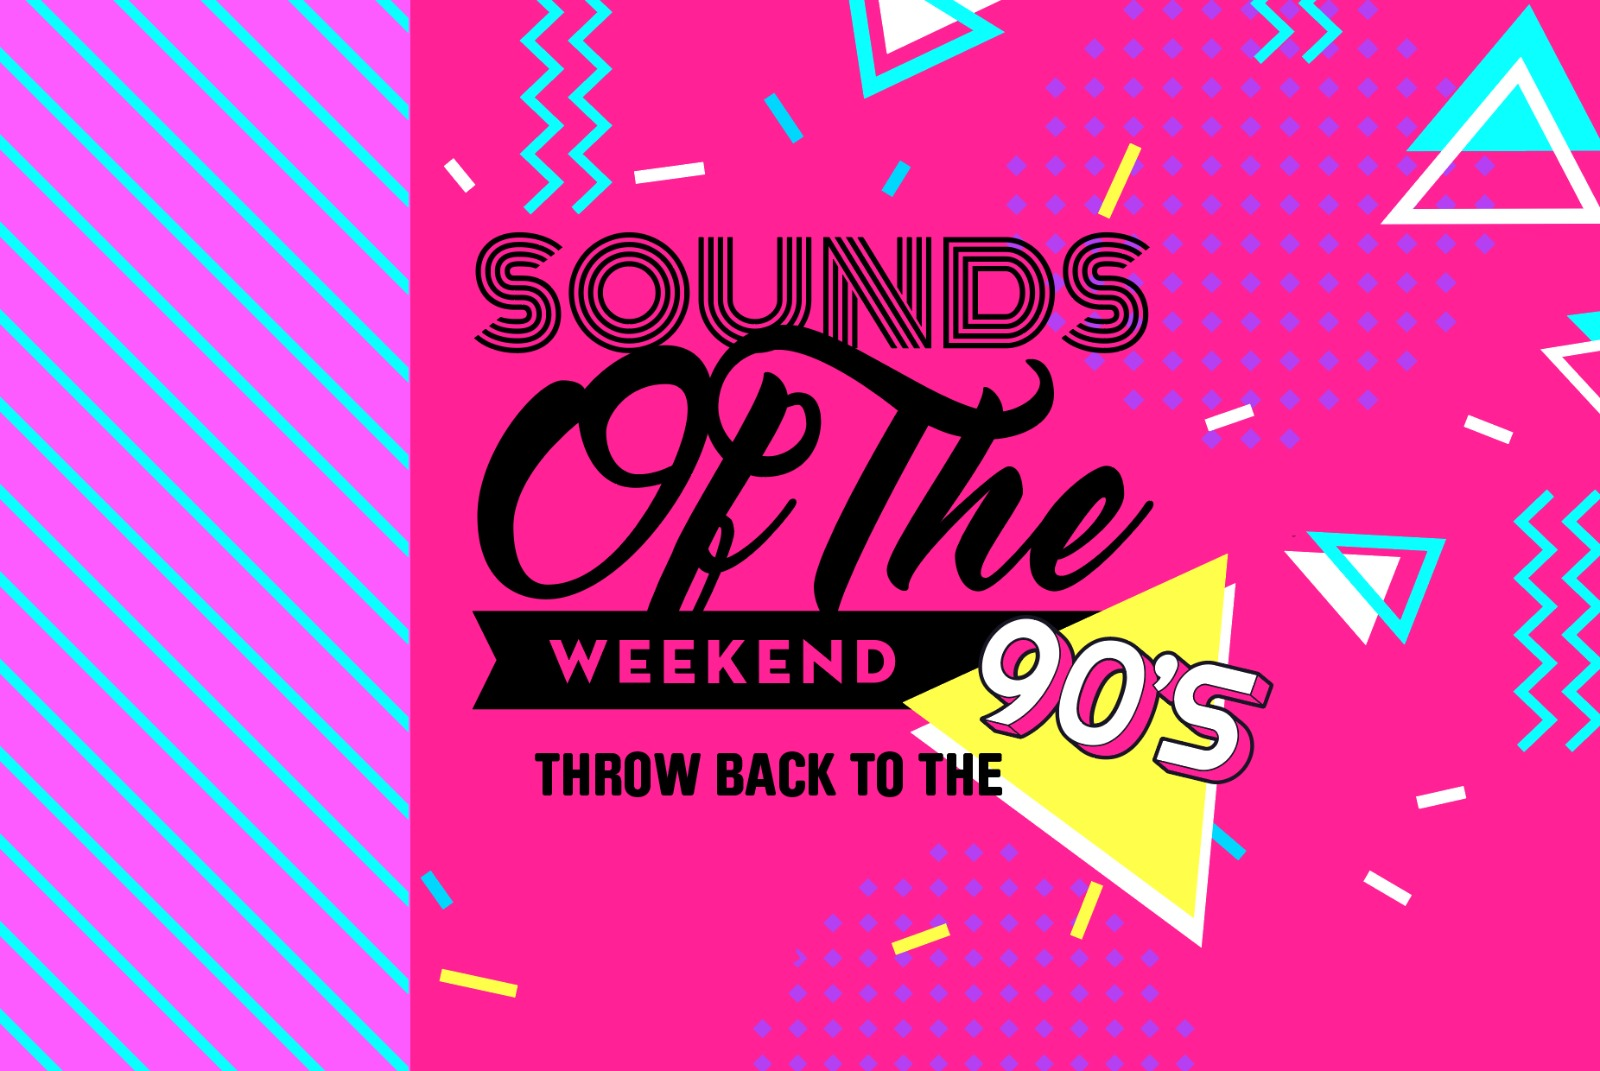 Sounds of the Weekend – Throwback to the 90's!